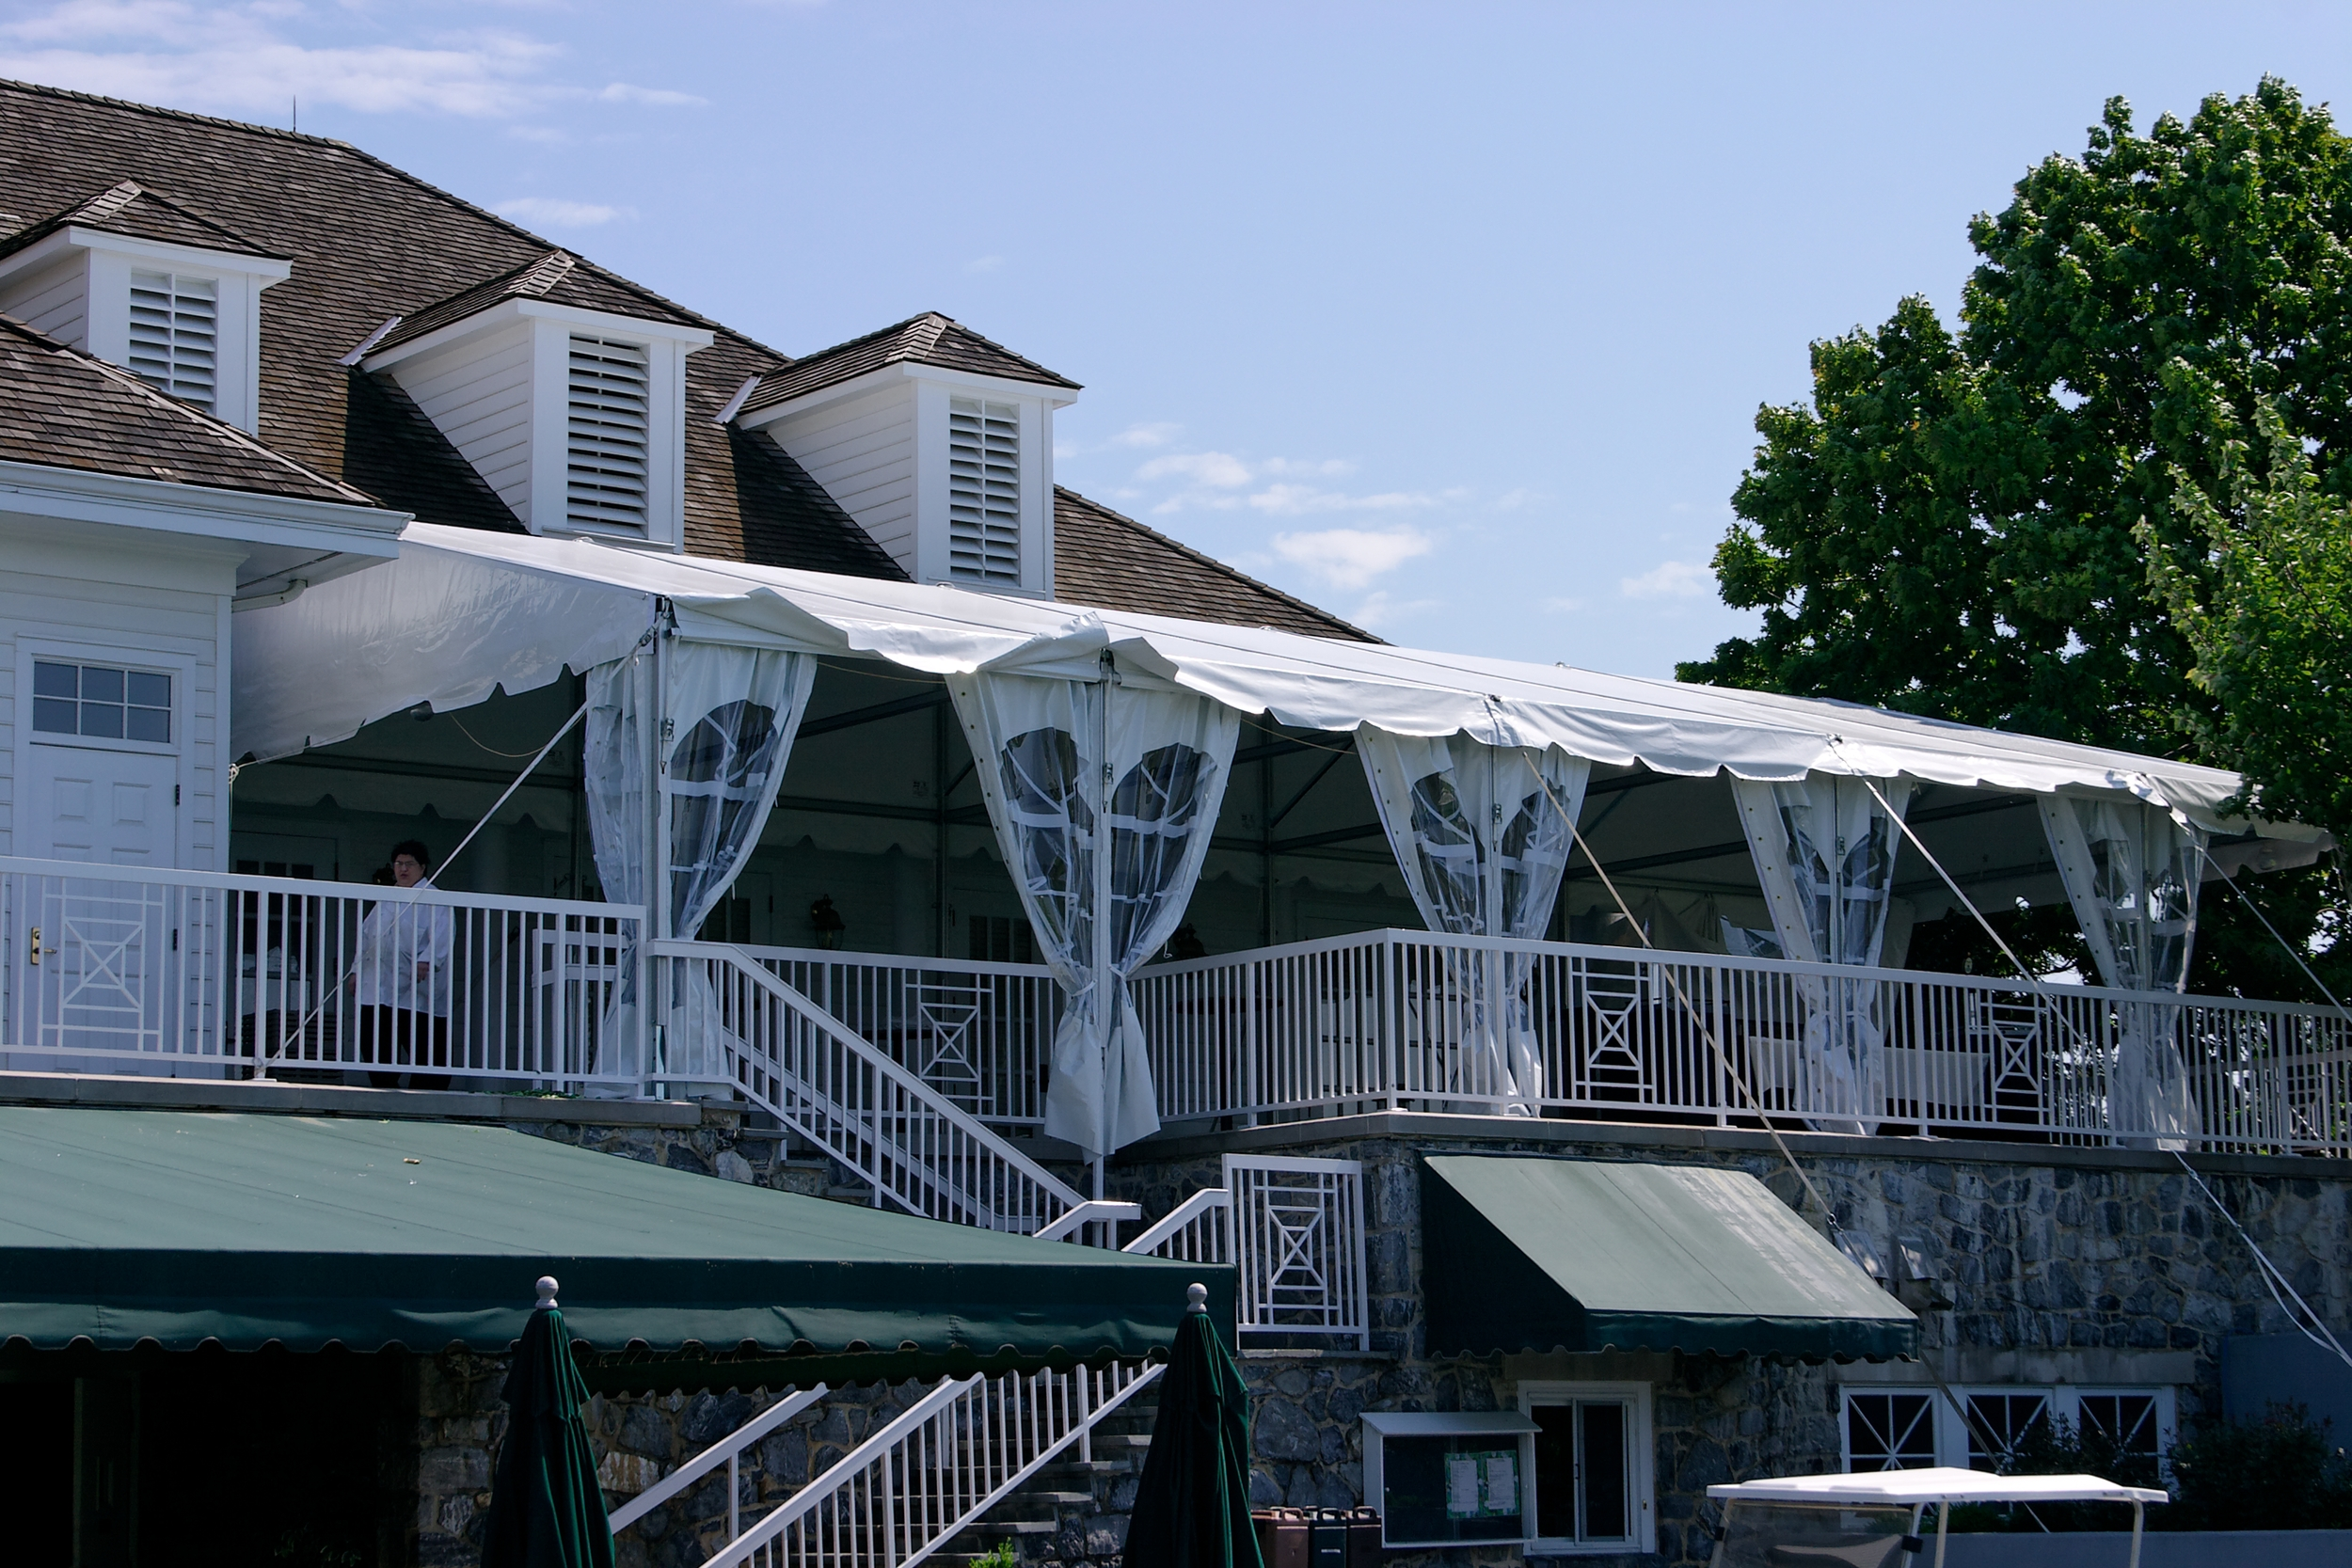 Tent on a second story patio as a restaurant